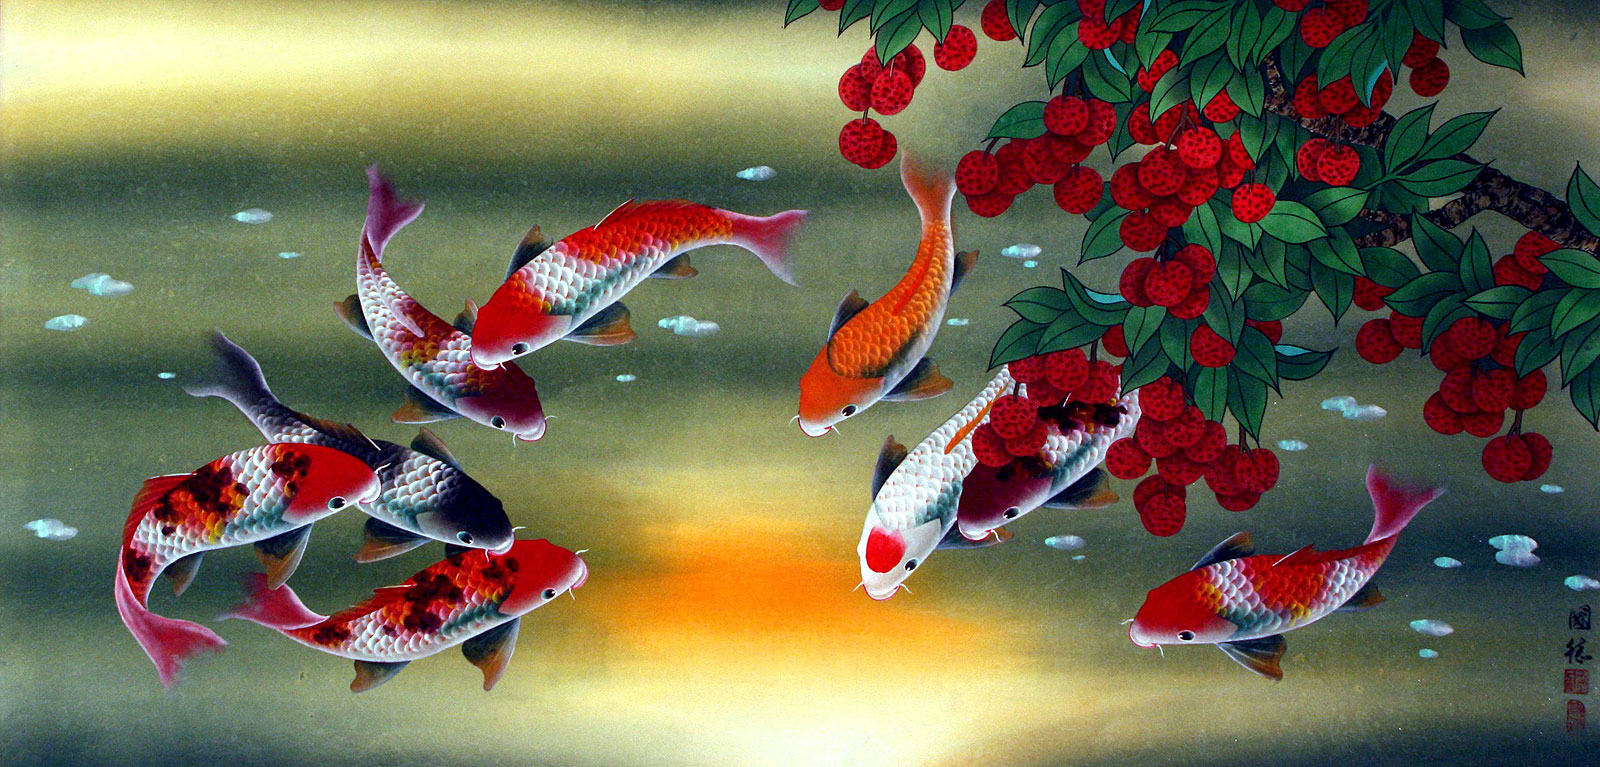 That would asian koi paintings seems